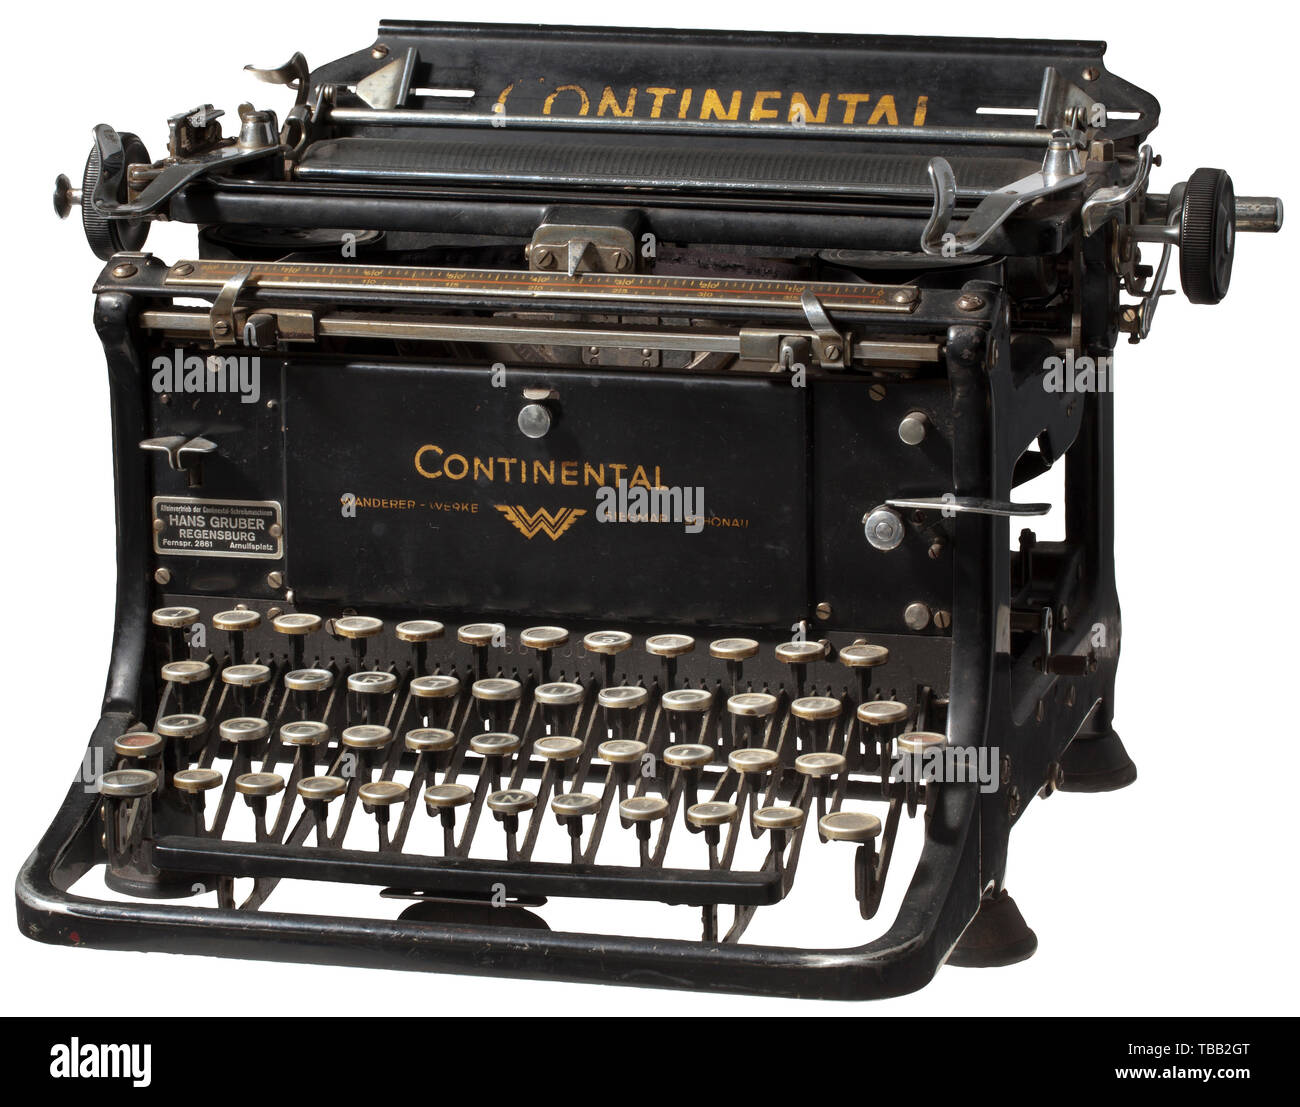 Eva Braun (1912 - 1945) - a typewriter from the Wasserburgerstraße 12 (today Delpstraße) in Munich. According to Gretl Braun's son, Rainer Berlinghoff, the typewriter was a personal present from Fritz Braun to his daughter Eva. The typewriter remained in family hands and became the property of Eva's sister Margarete 'Gretl' Braun. She took the typewriter, which was among Eva Braun's belongings in the latter's mansion in the Wasserburgerstr. 12. Typewriter in working order, type 'Continental' by the Wanderer-Werke, Siegmar-Schonau, distributed by Hans Gruber in Regensburg (t, Editorial-Use-Only - Stock Image